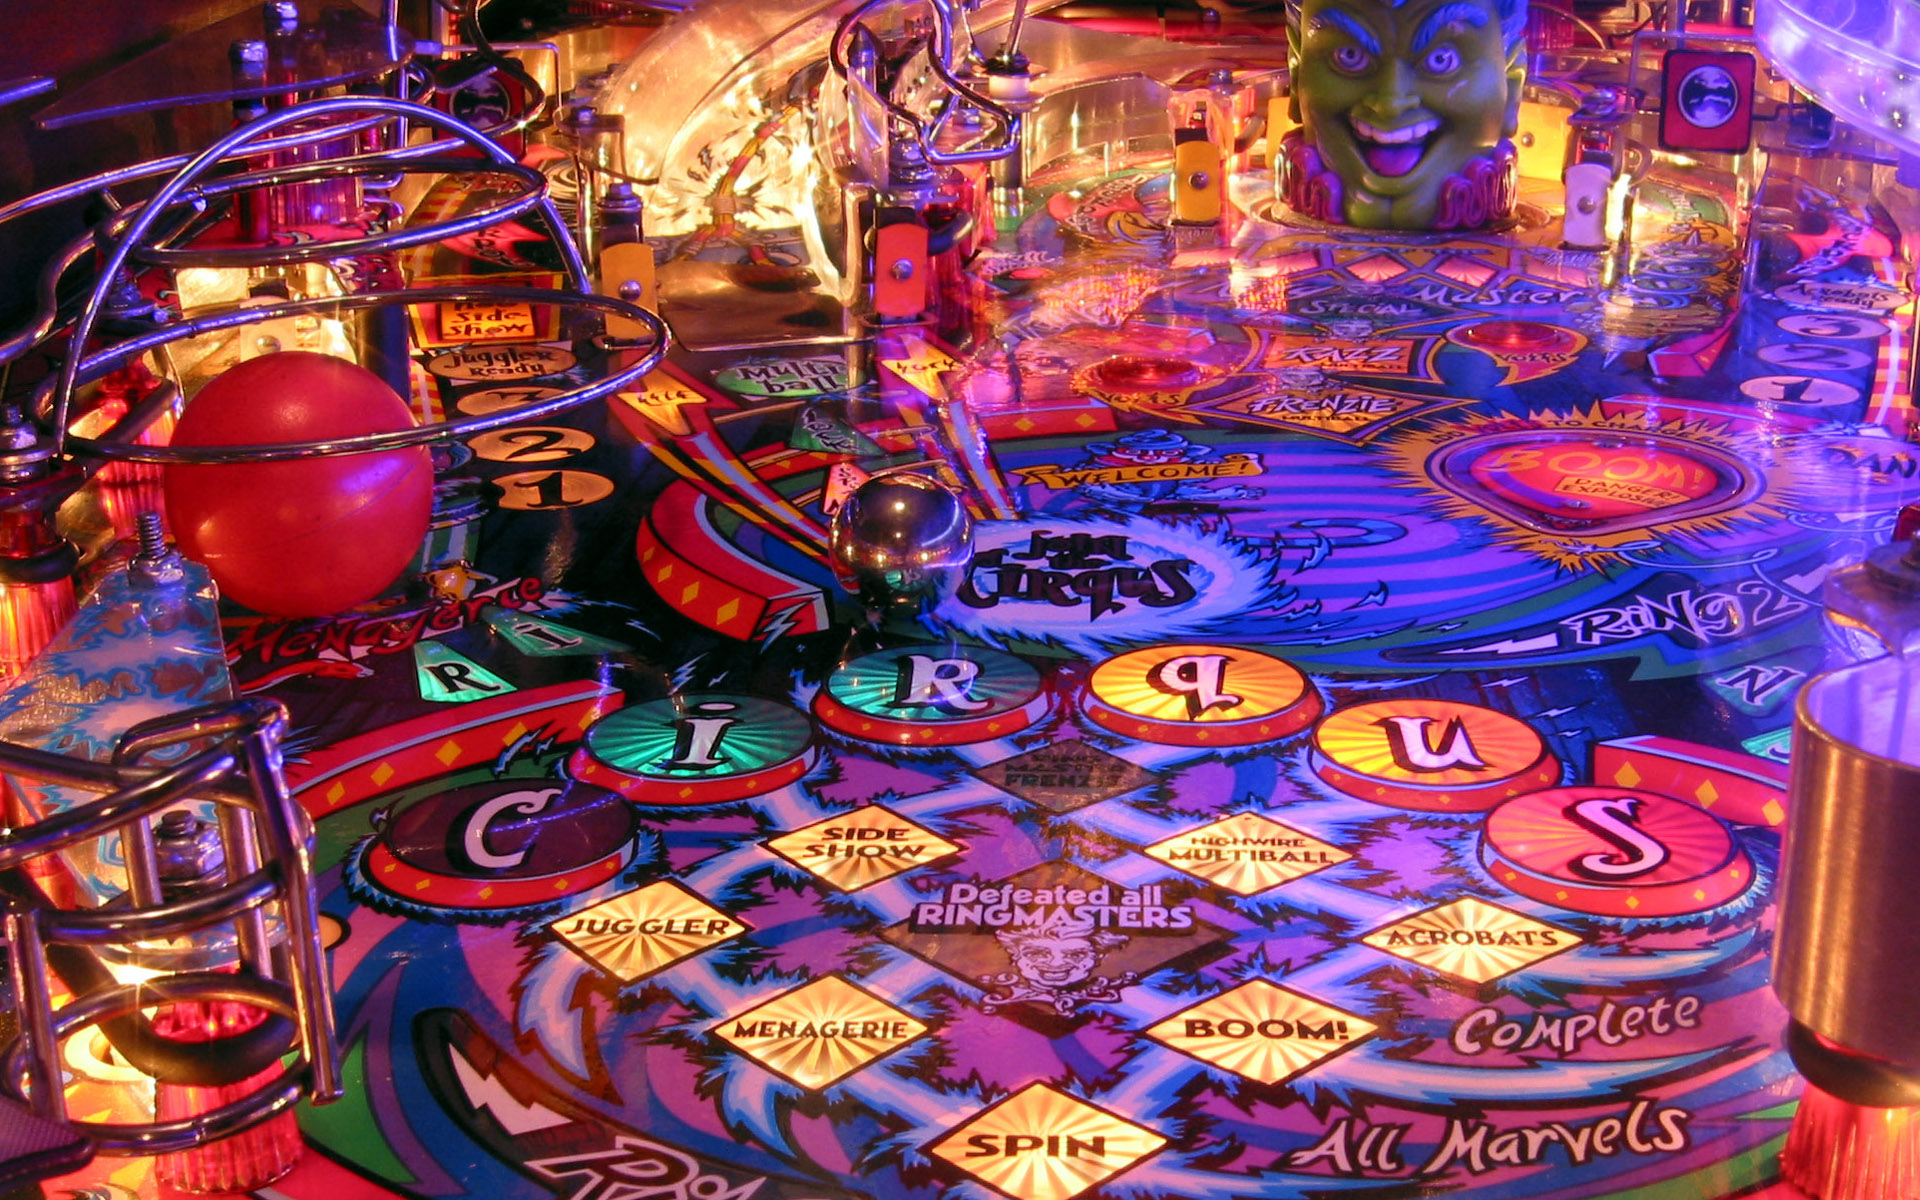 Backgrounds In High Quality: Pinball by Rosamond Pendarvis, February 17, 2016